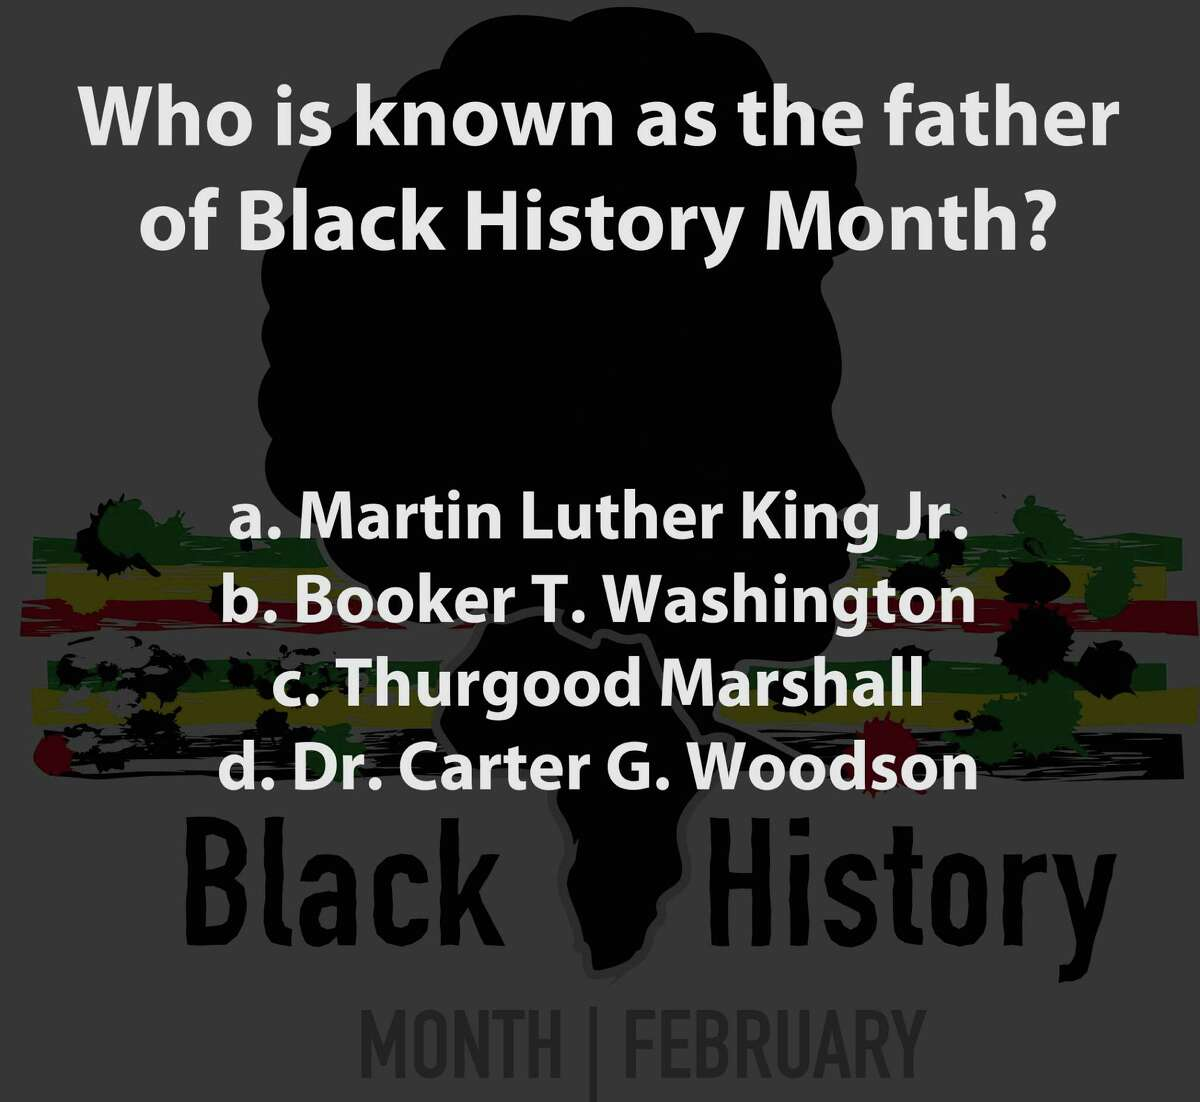 Test your knowledge with this Black History Quiz from Black Entertainment Television.